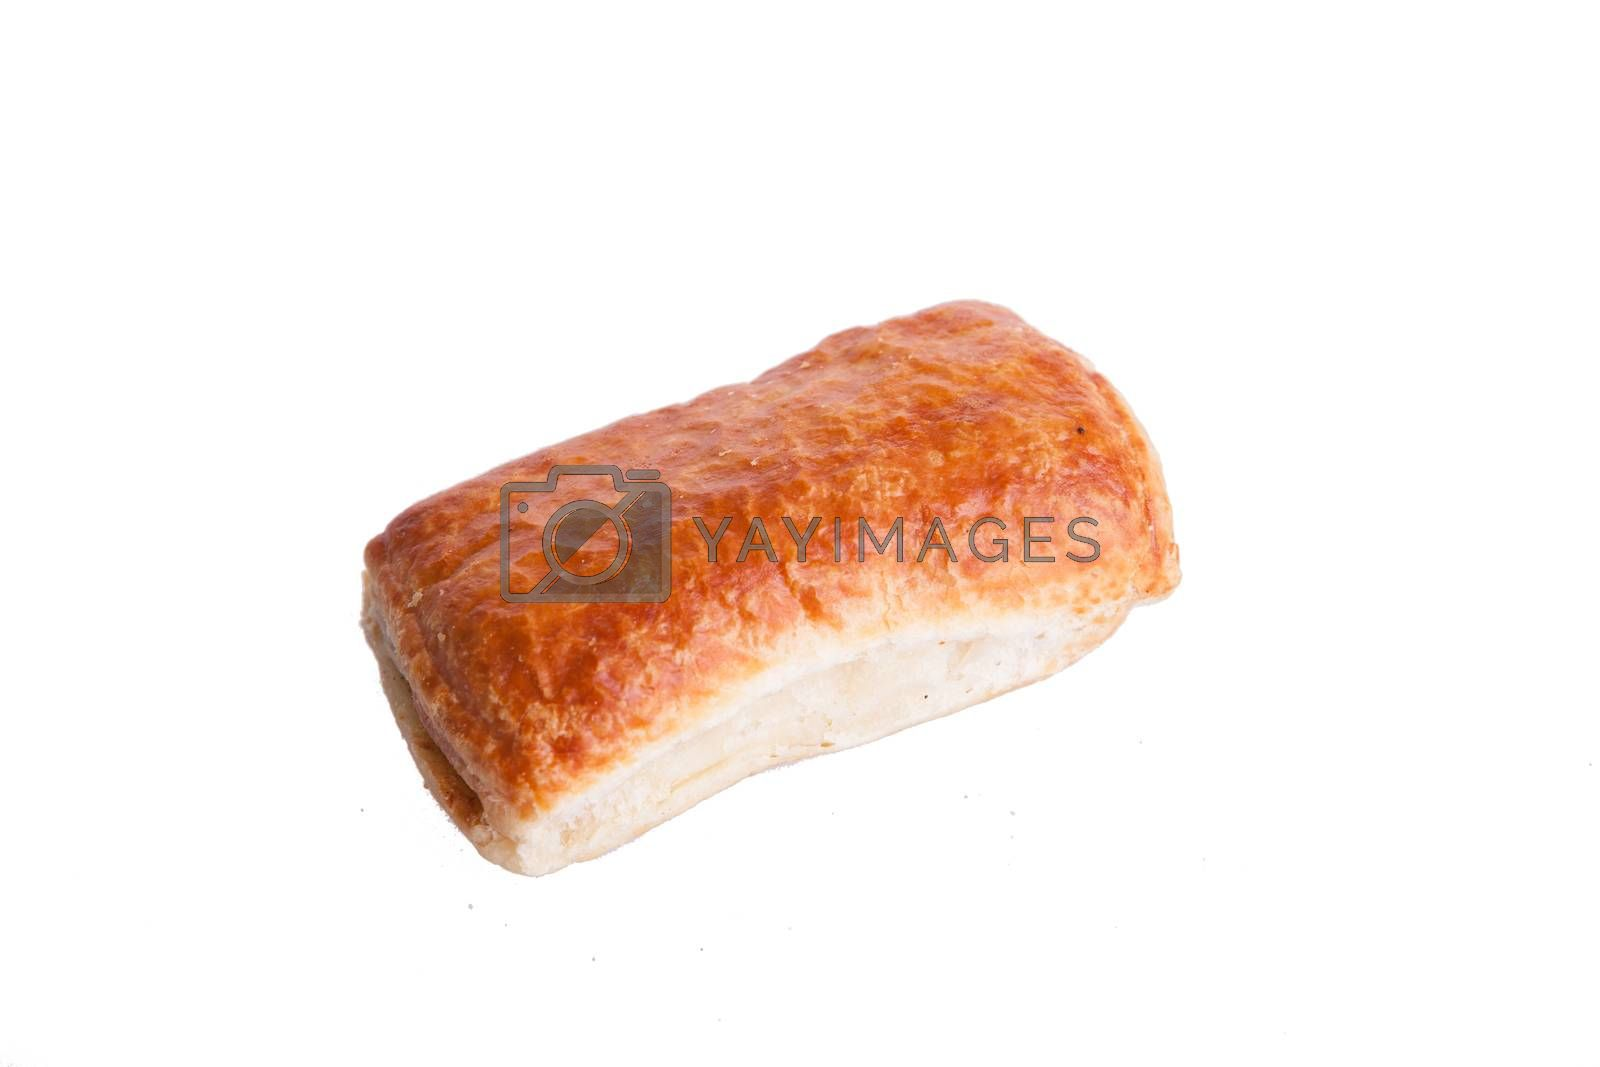 Puff and tasty pastry isolated on white background by DCStudio